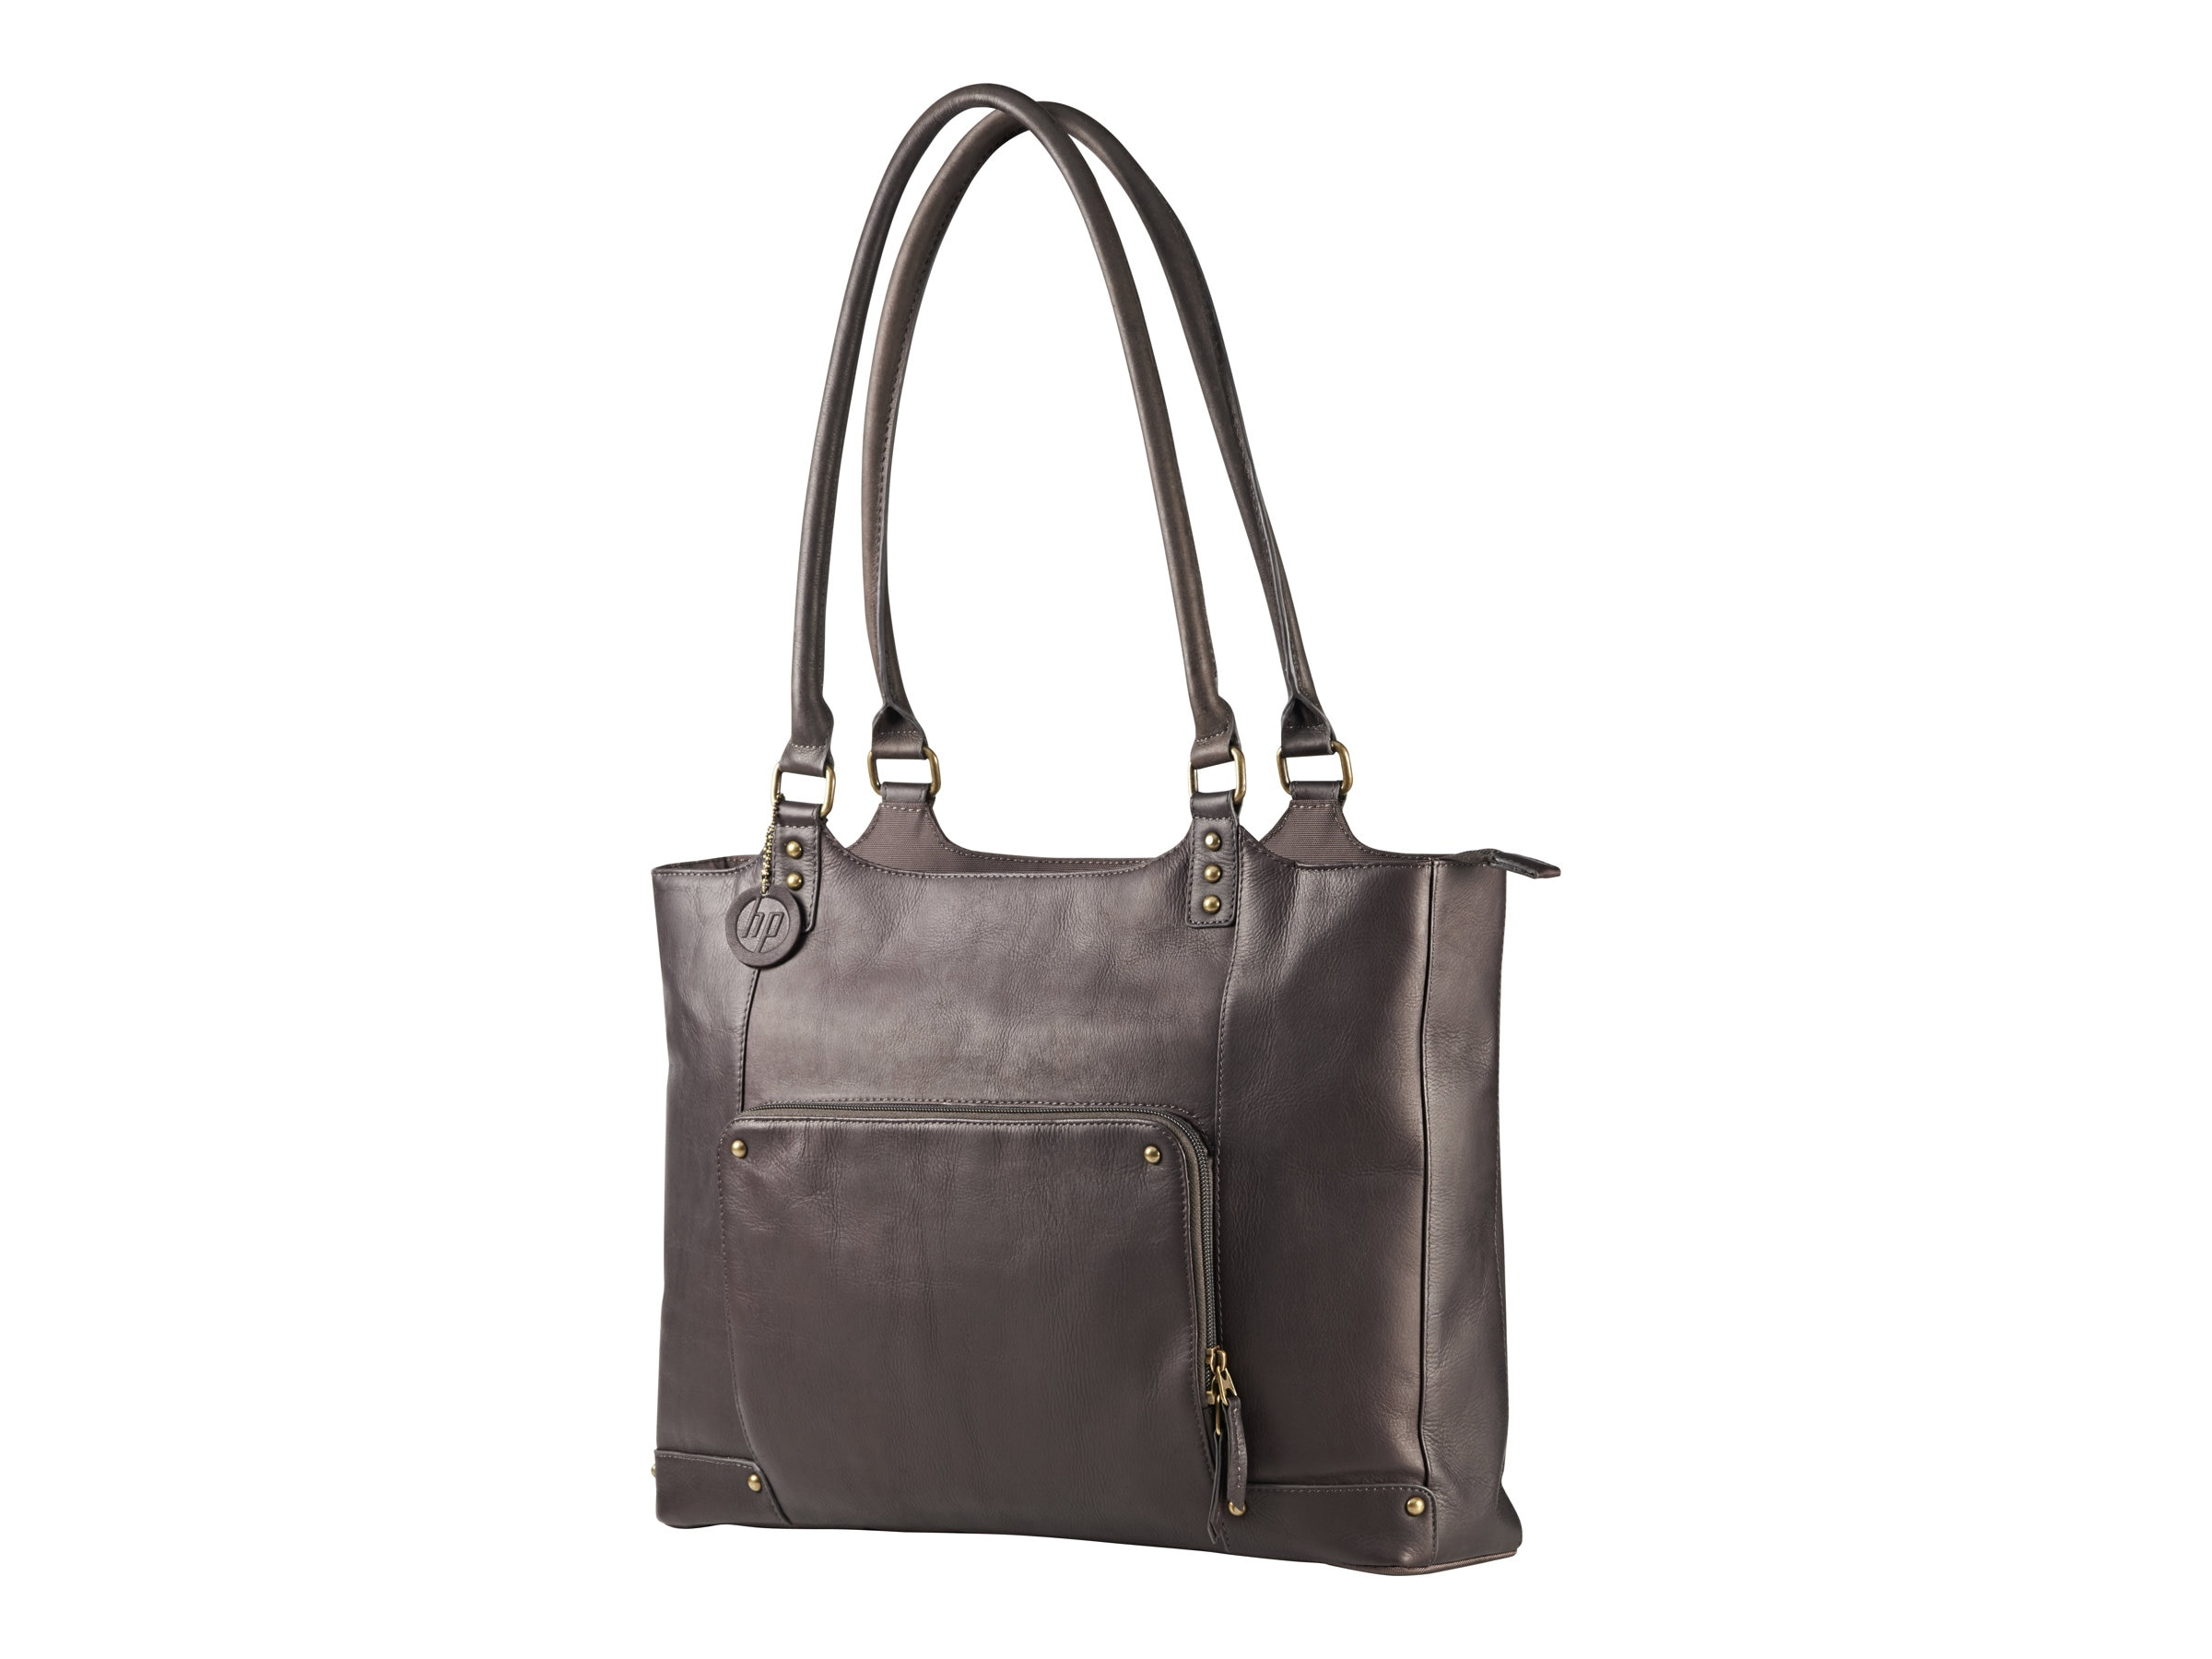 HP Ladies Leather Tote, Brown